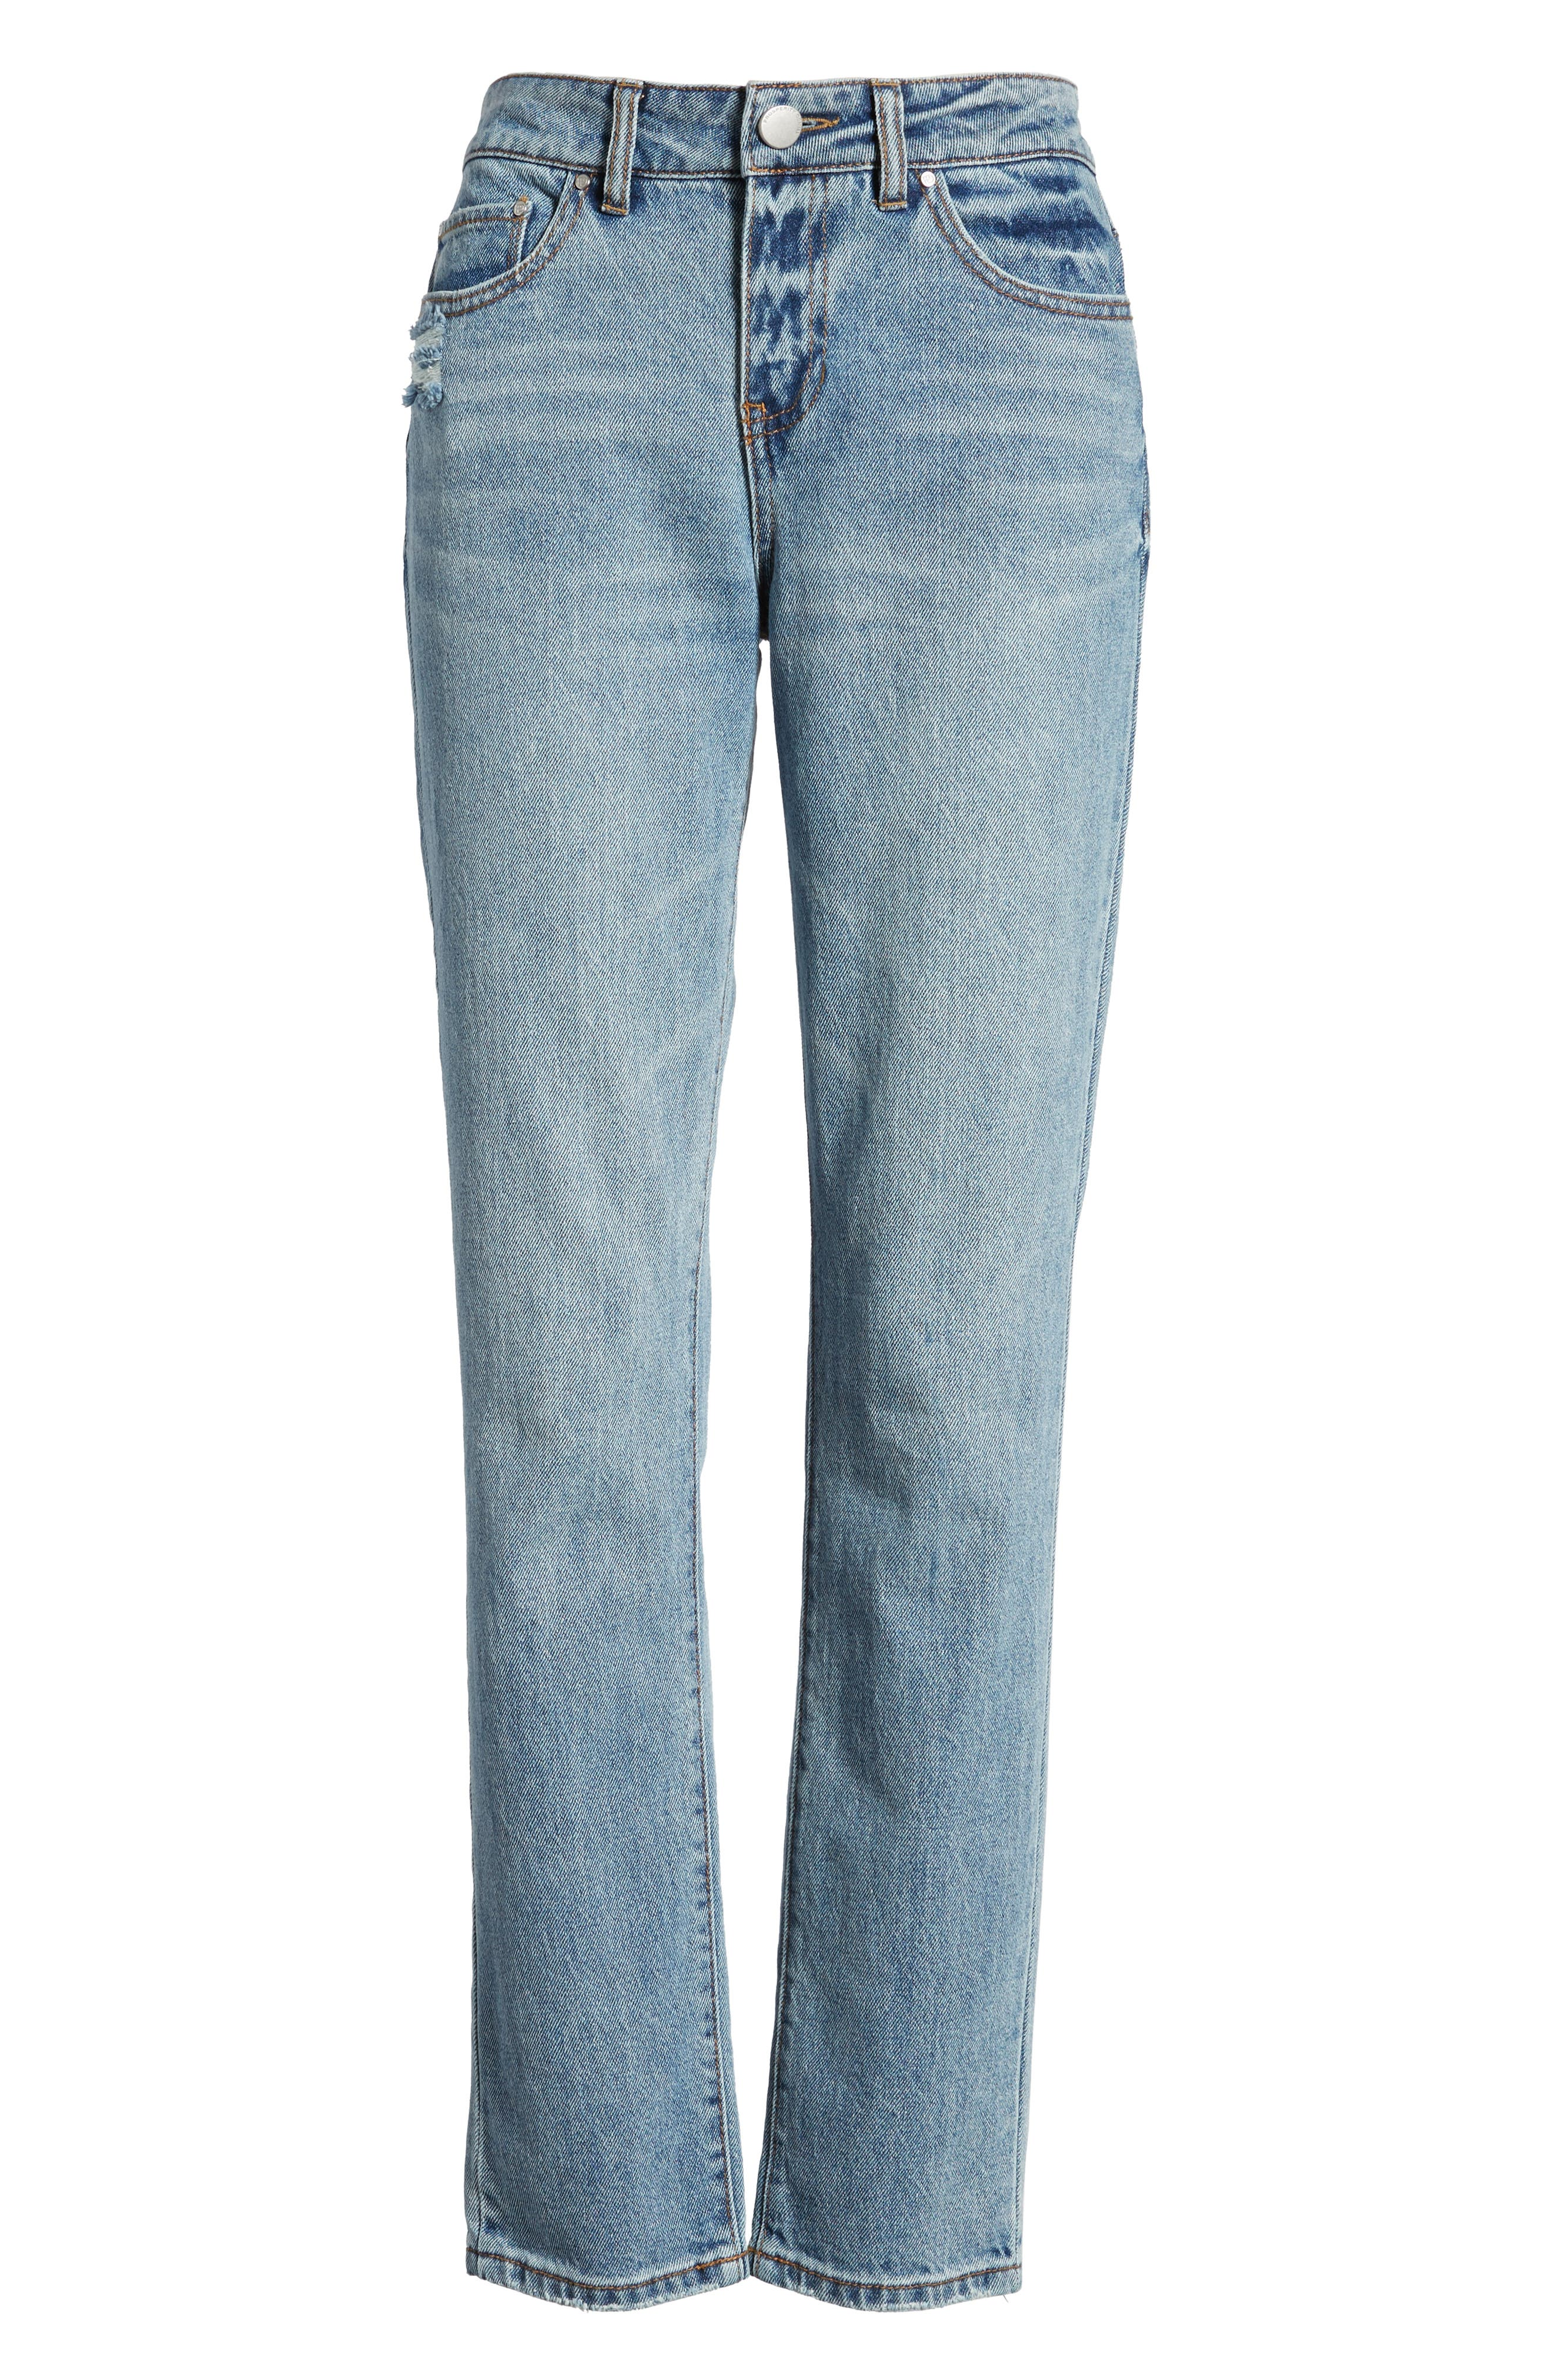 High Waist Skinny Jeans,                             Alternate thumbnail 7, color,                             468